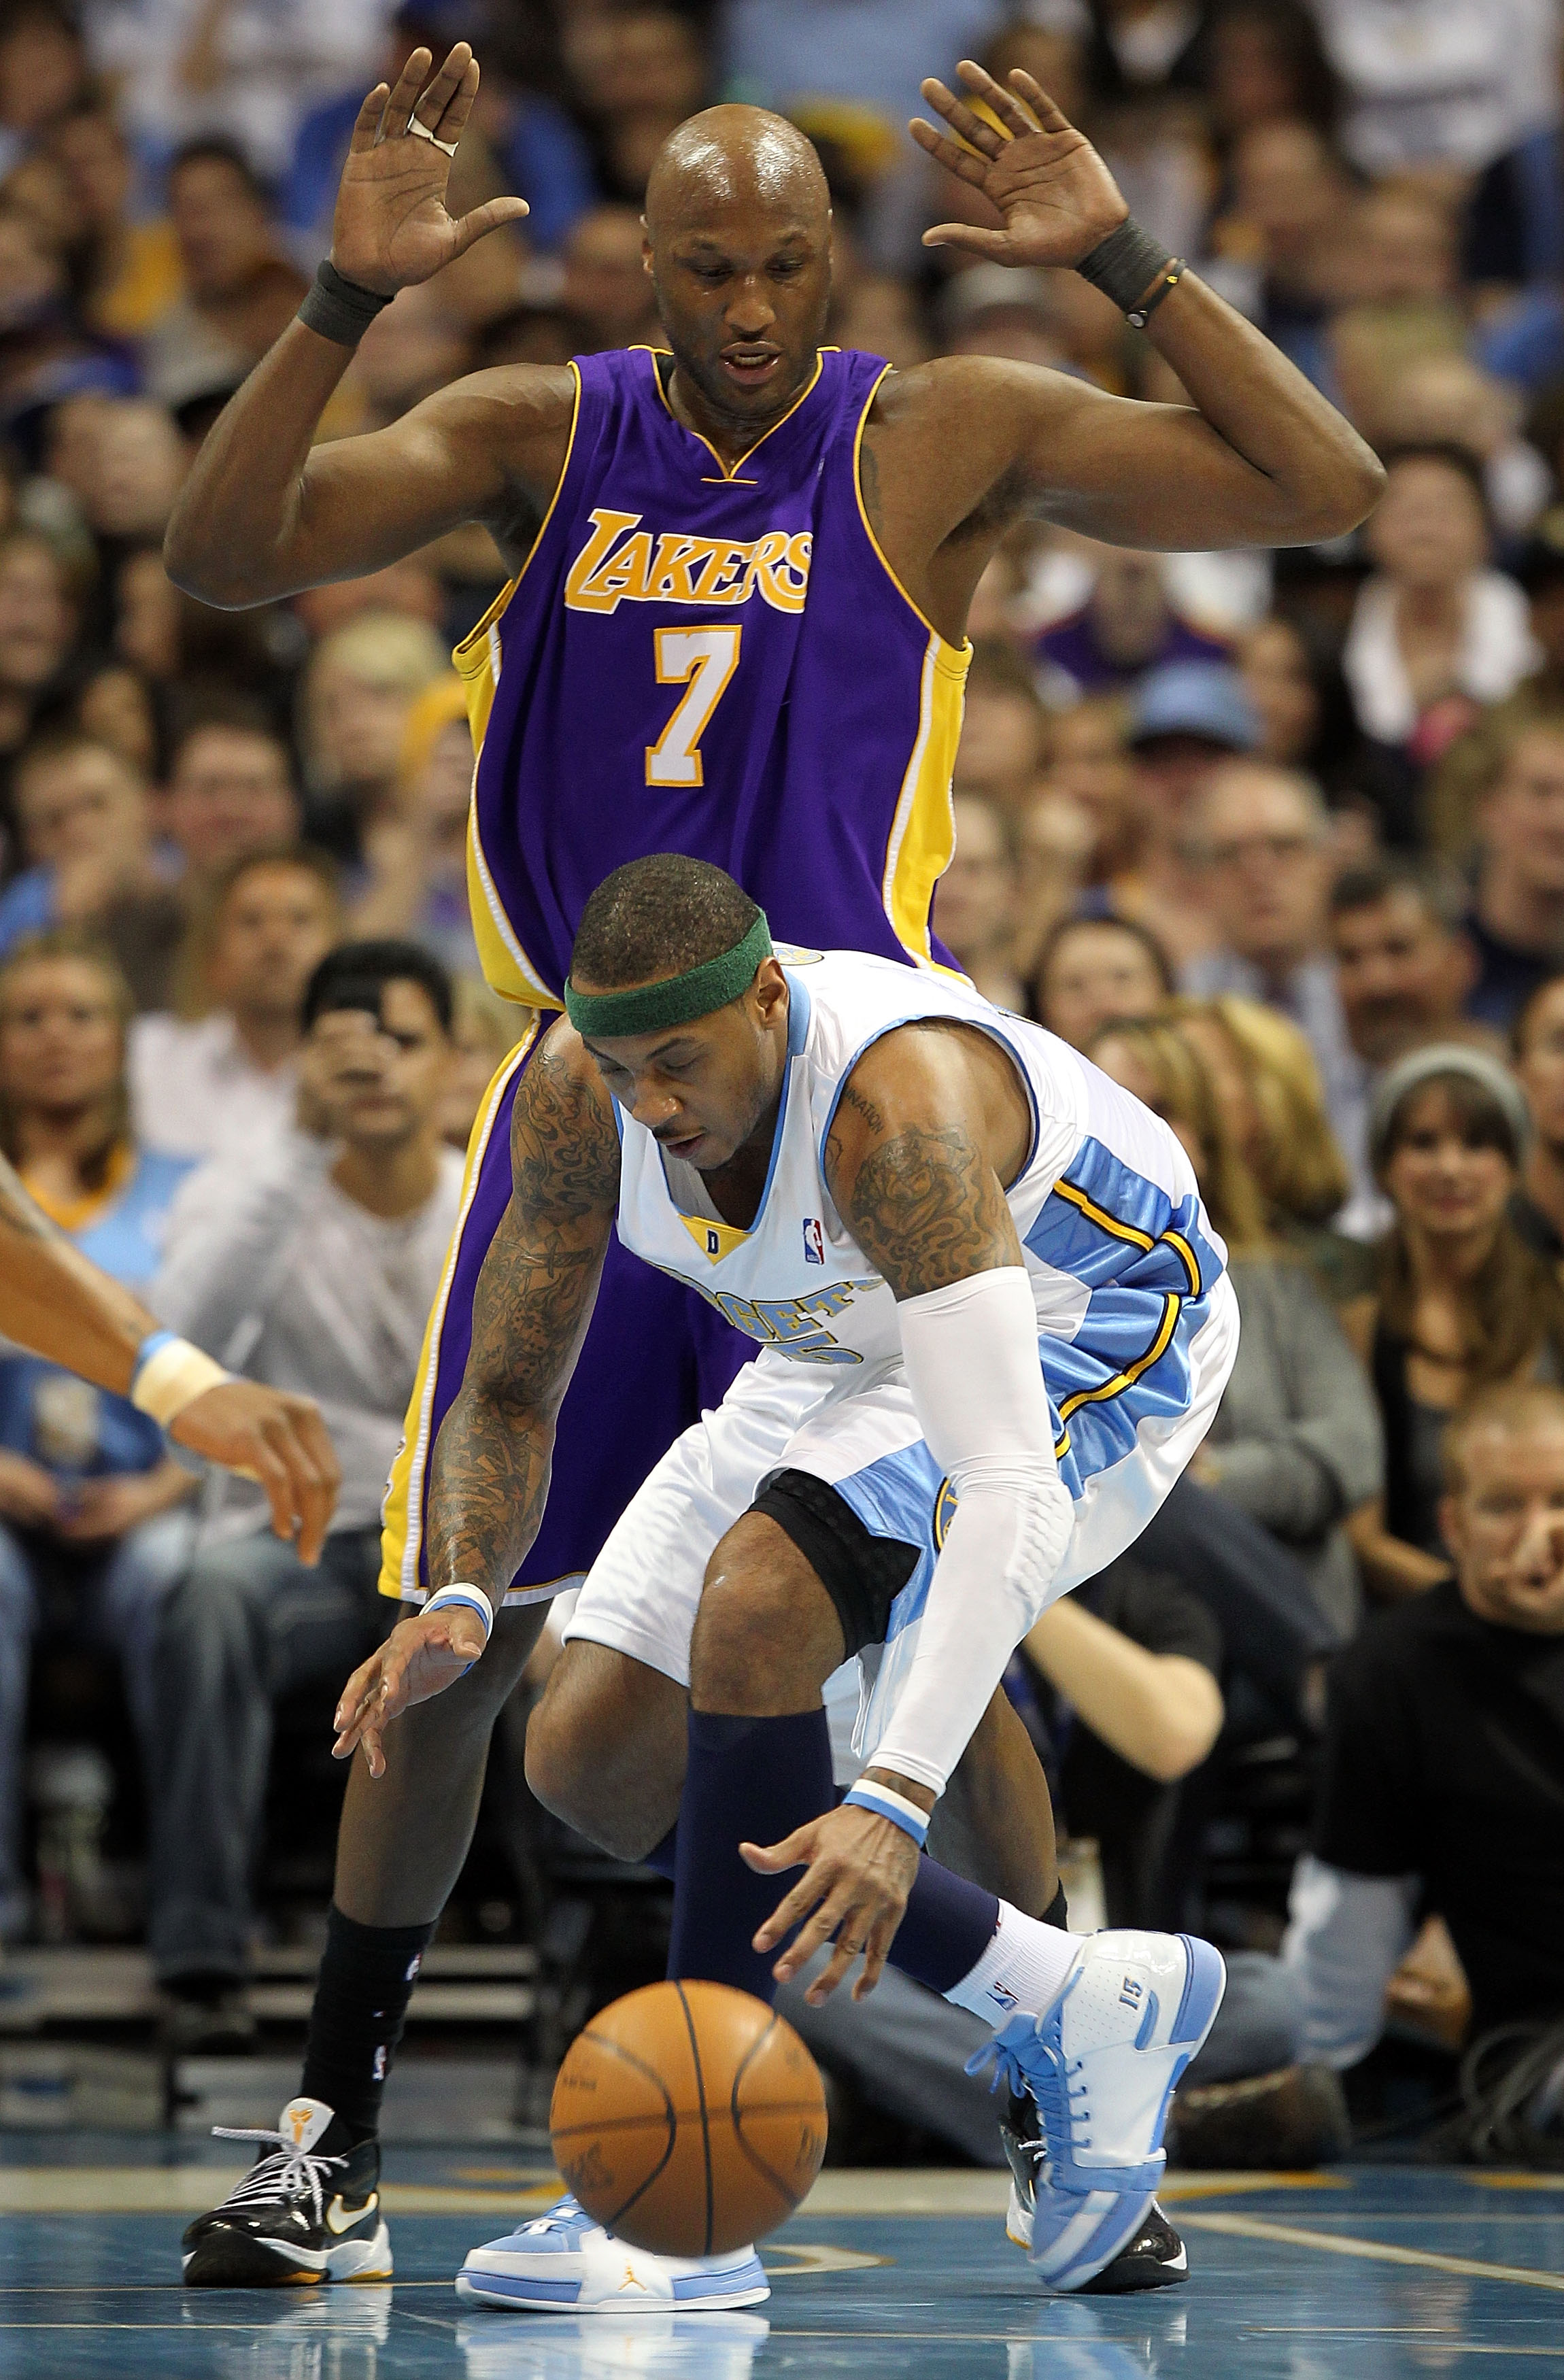 DENVER - APRIL 08:  Carmelo Anthony #15 of the Denver Nuggets collects the ball as Lamar Odom #7 of the Los Angeles Lakers defends during NBA action at the Pepsi Center on April 8, 2010 in Denver, Colorado. NOTE TO USER: User expressly acknowledges and ag